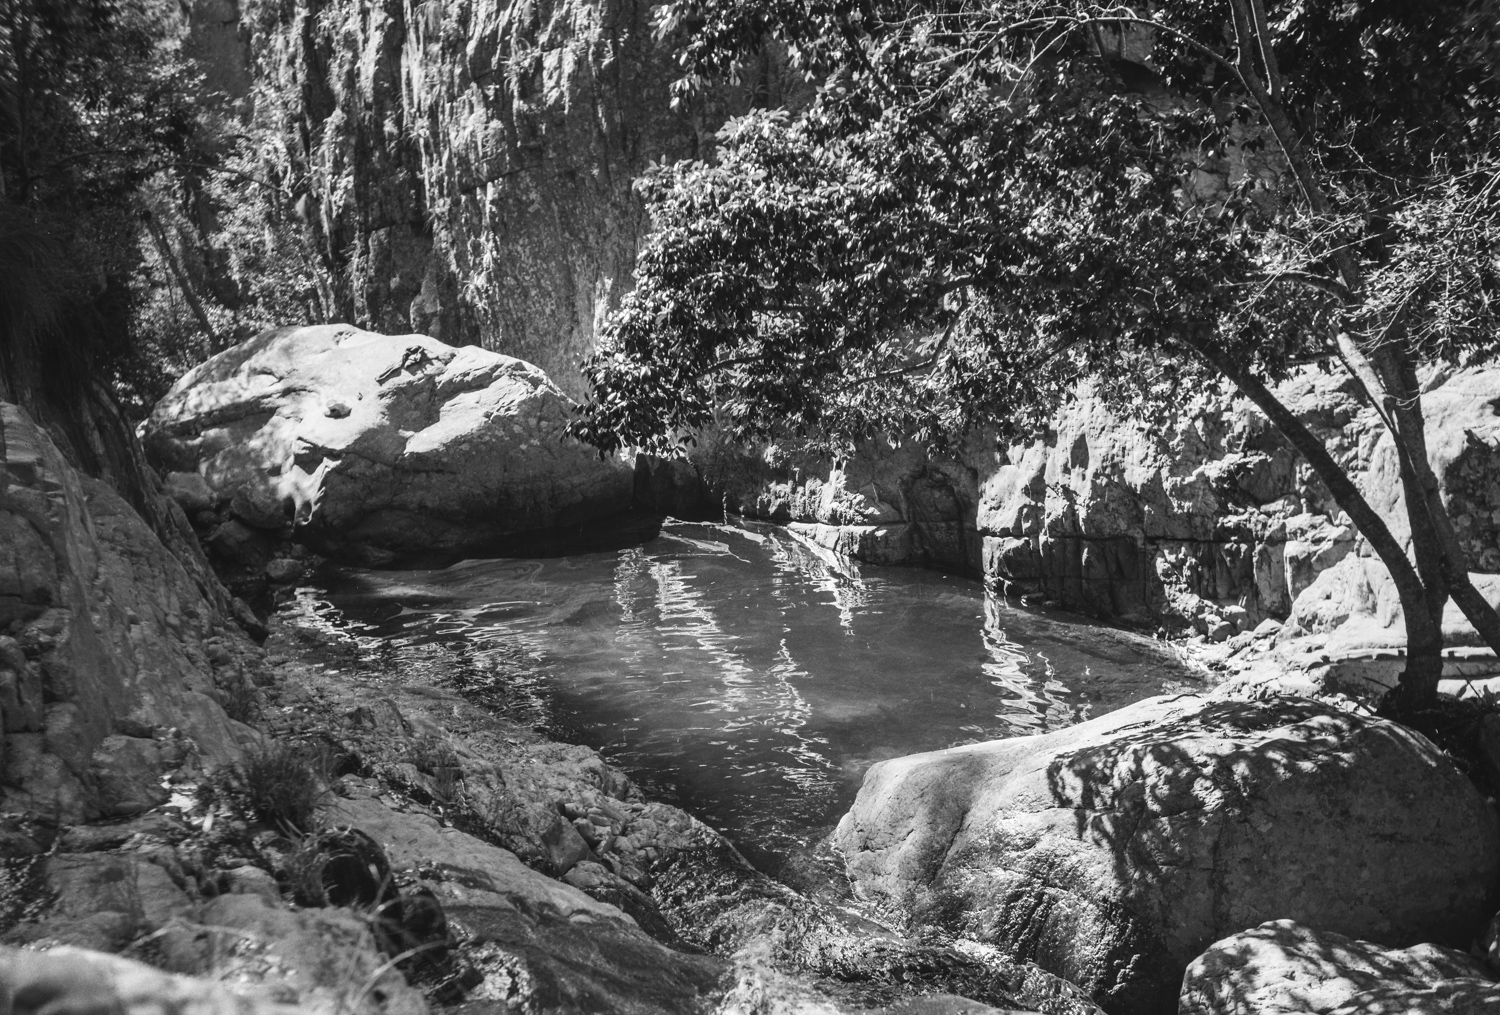 Pool - Magaliesberg, 1968